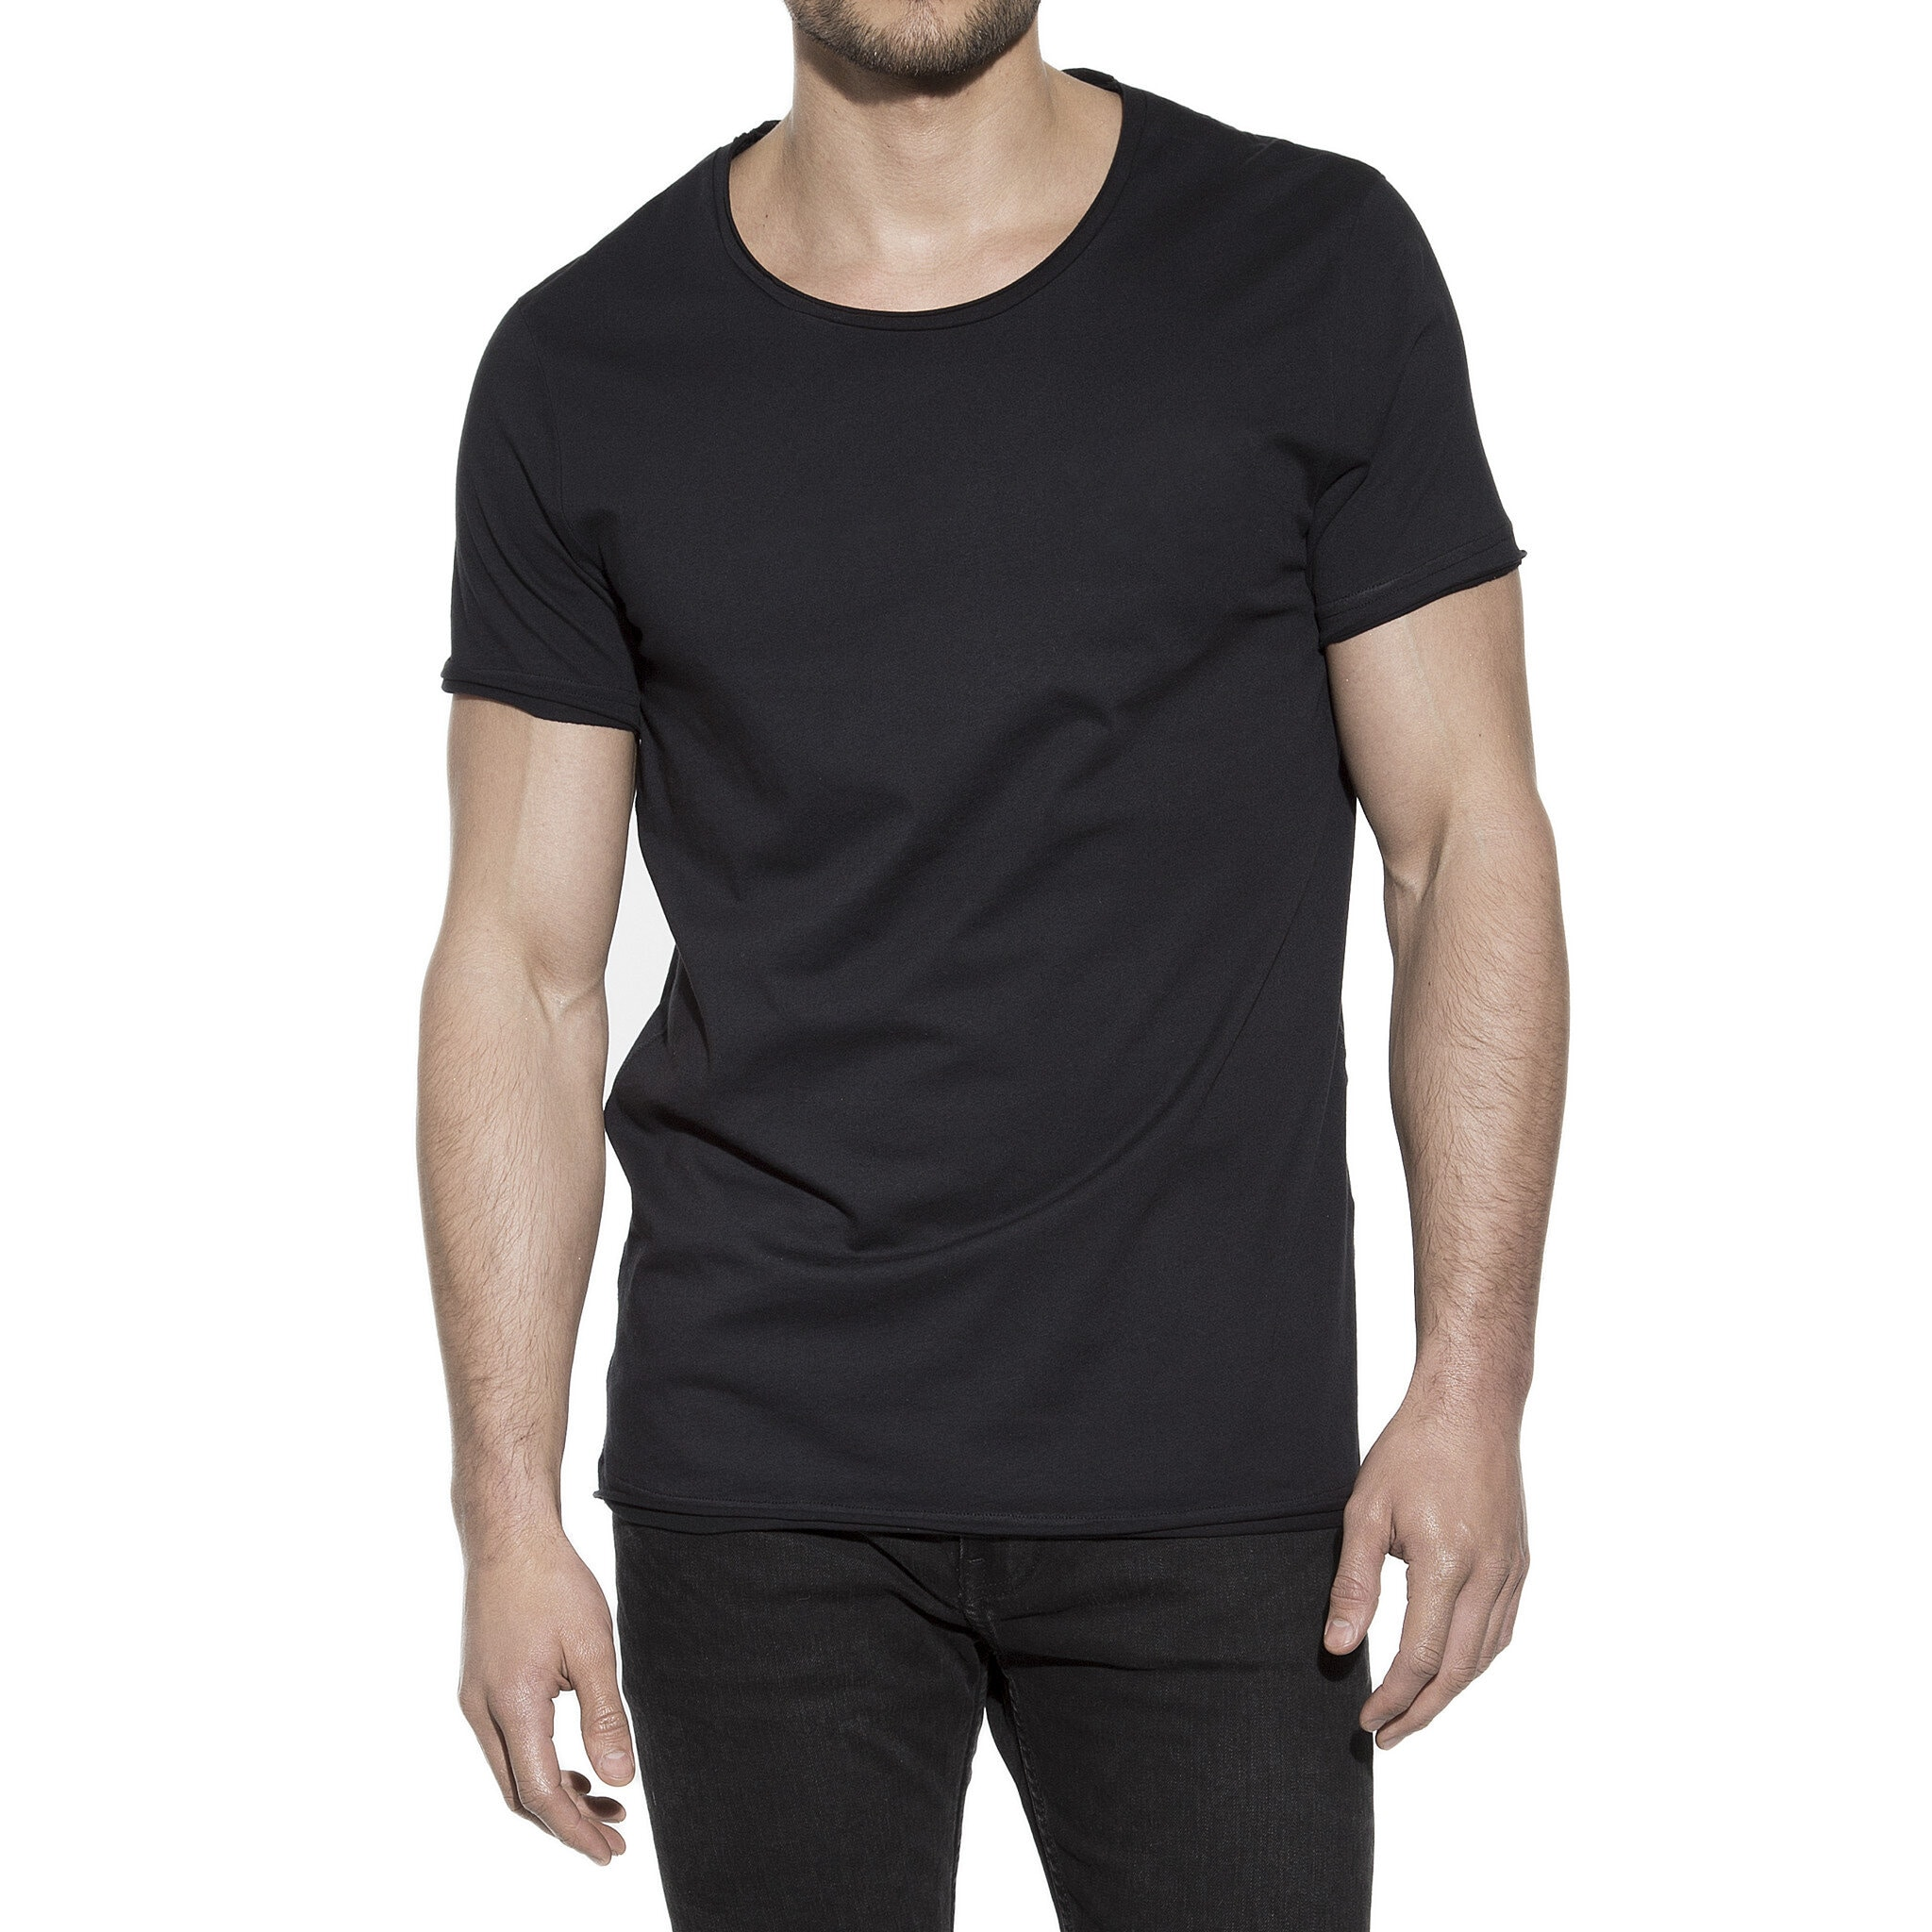 103202_Man_Crew-Neck_relaxed_black_1